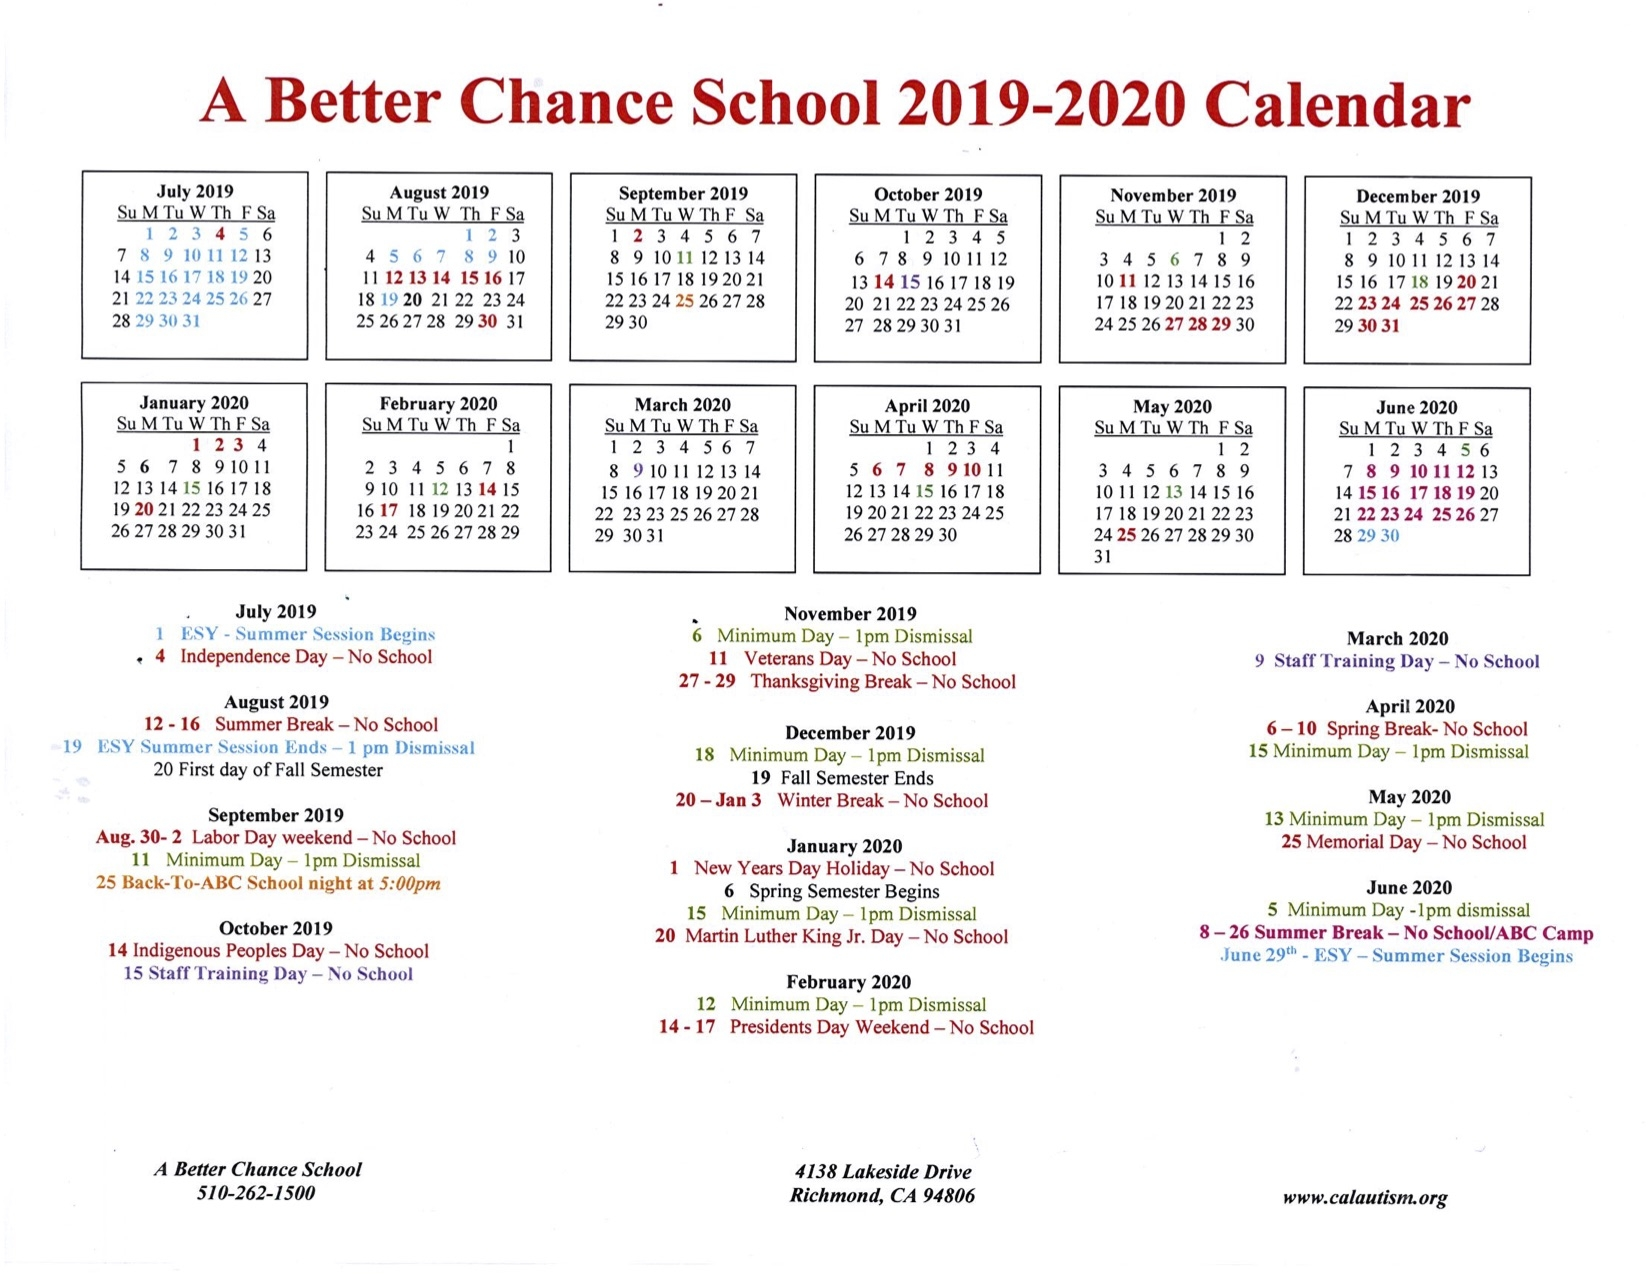 A Better Chance School 2019 2020 Calendar California Autism Foundation